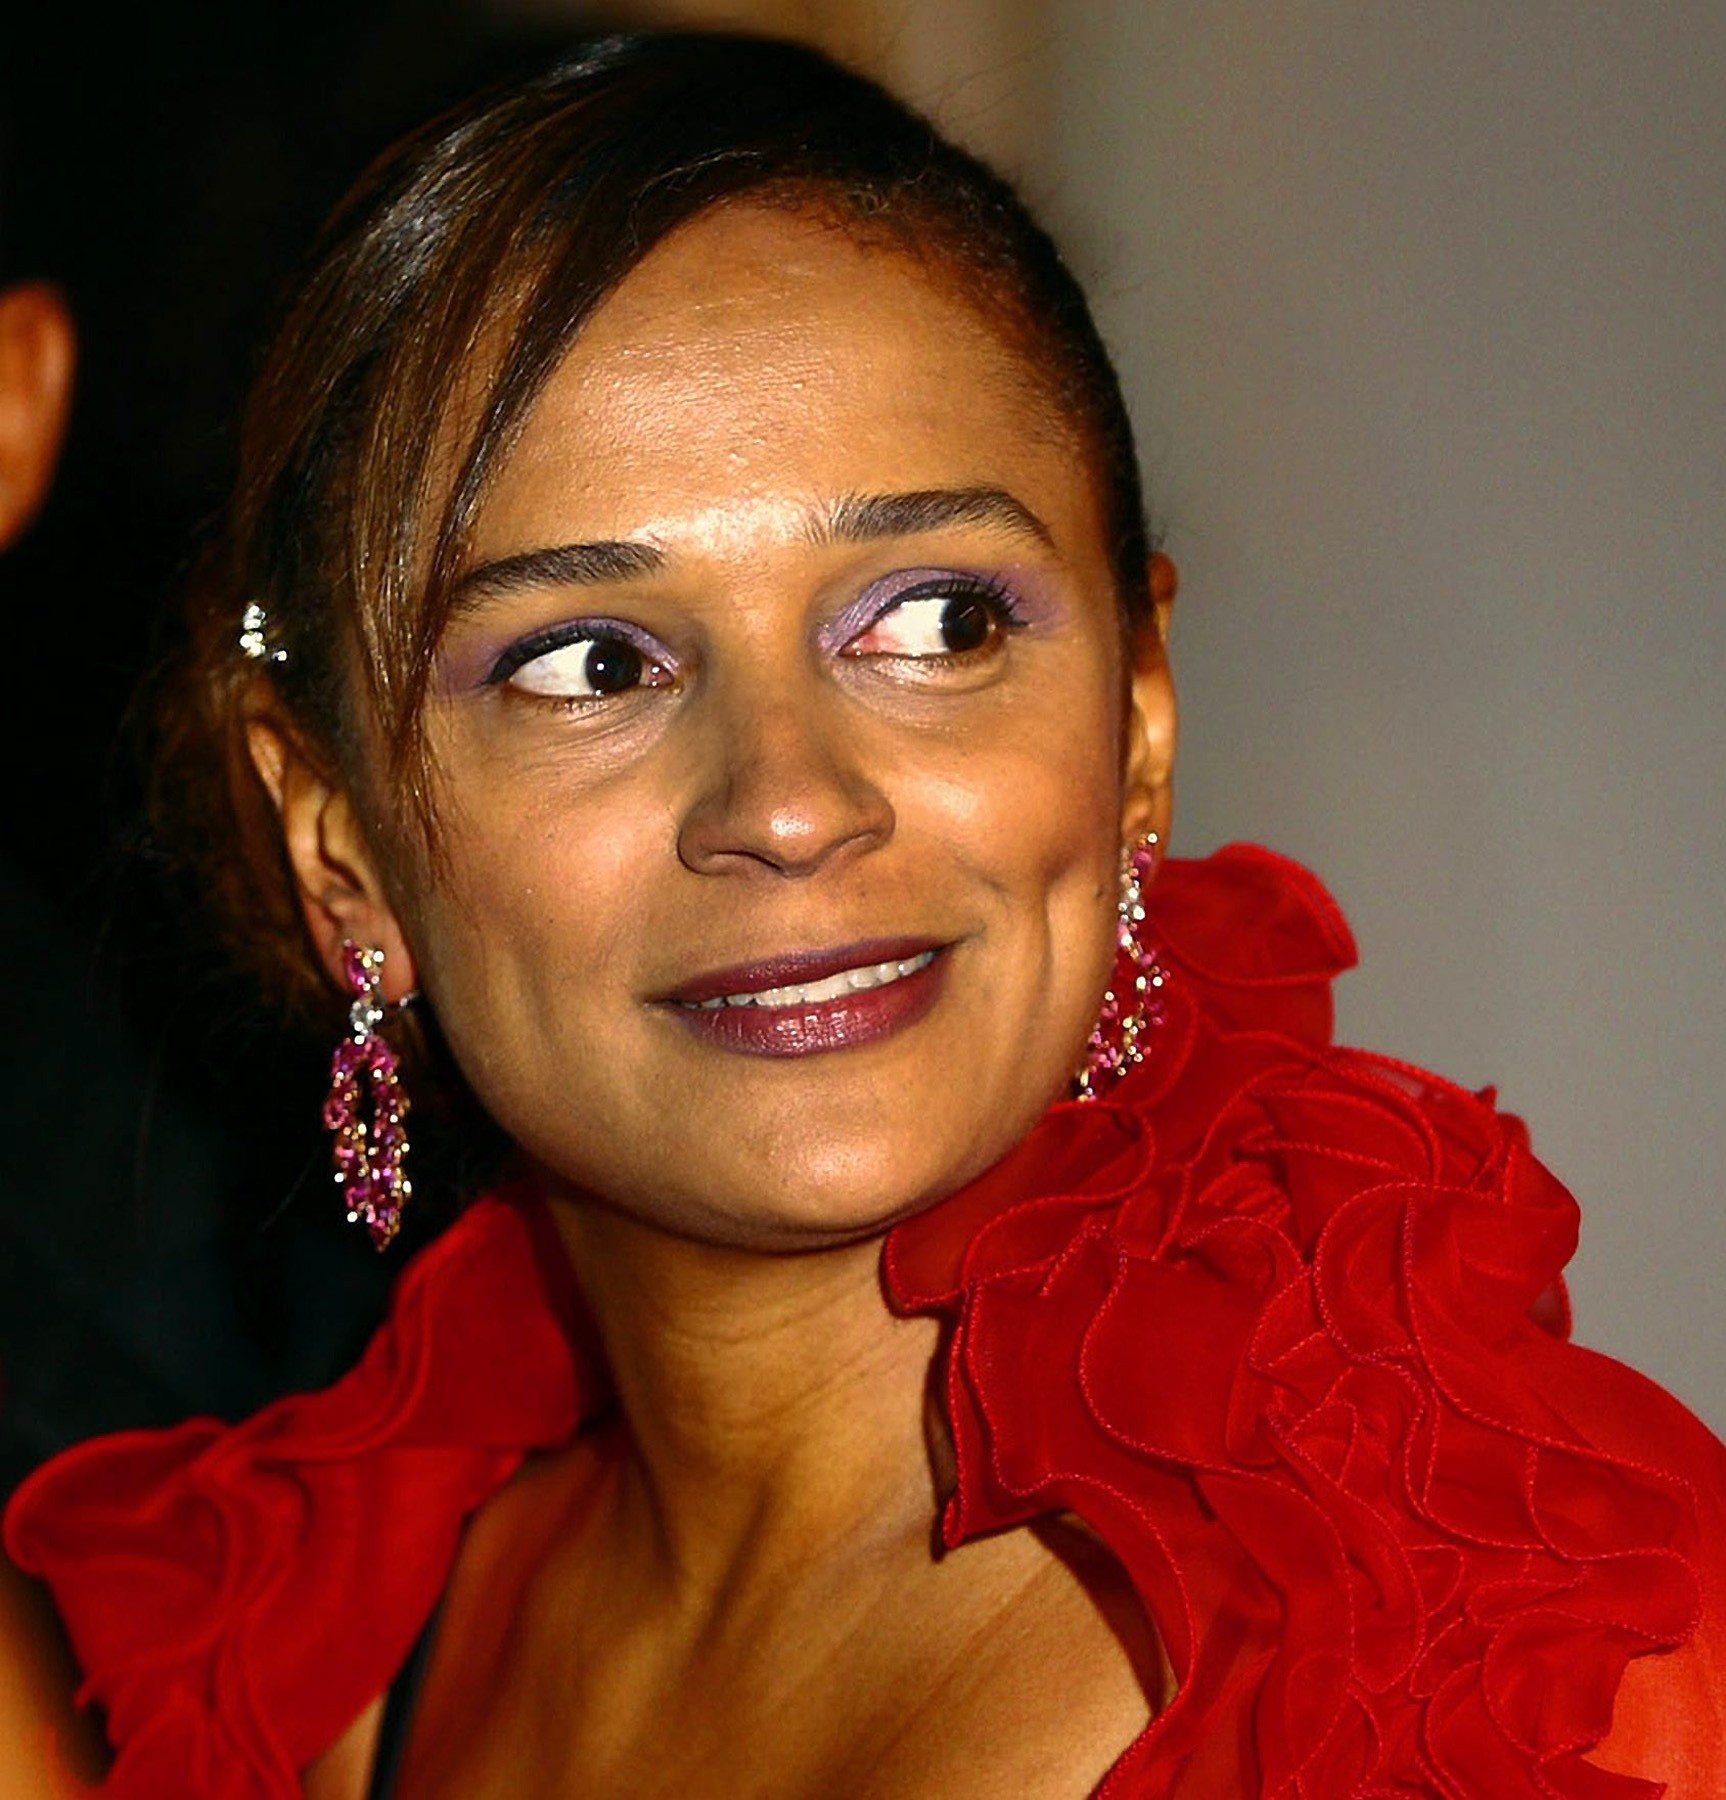 ISABEL DOS SANTOS SMILING IN LUANDA